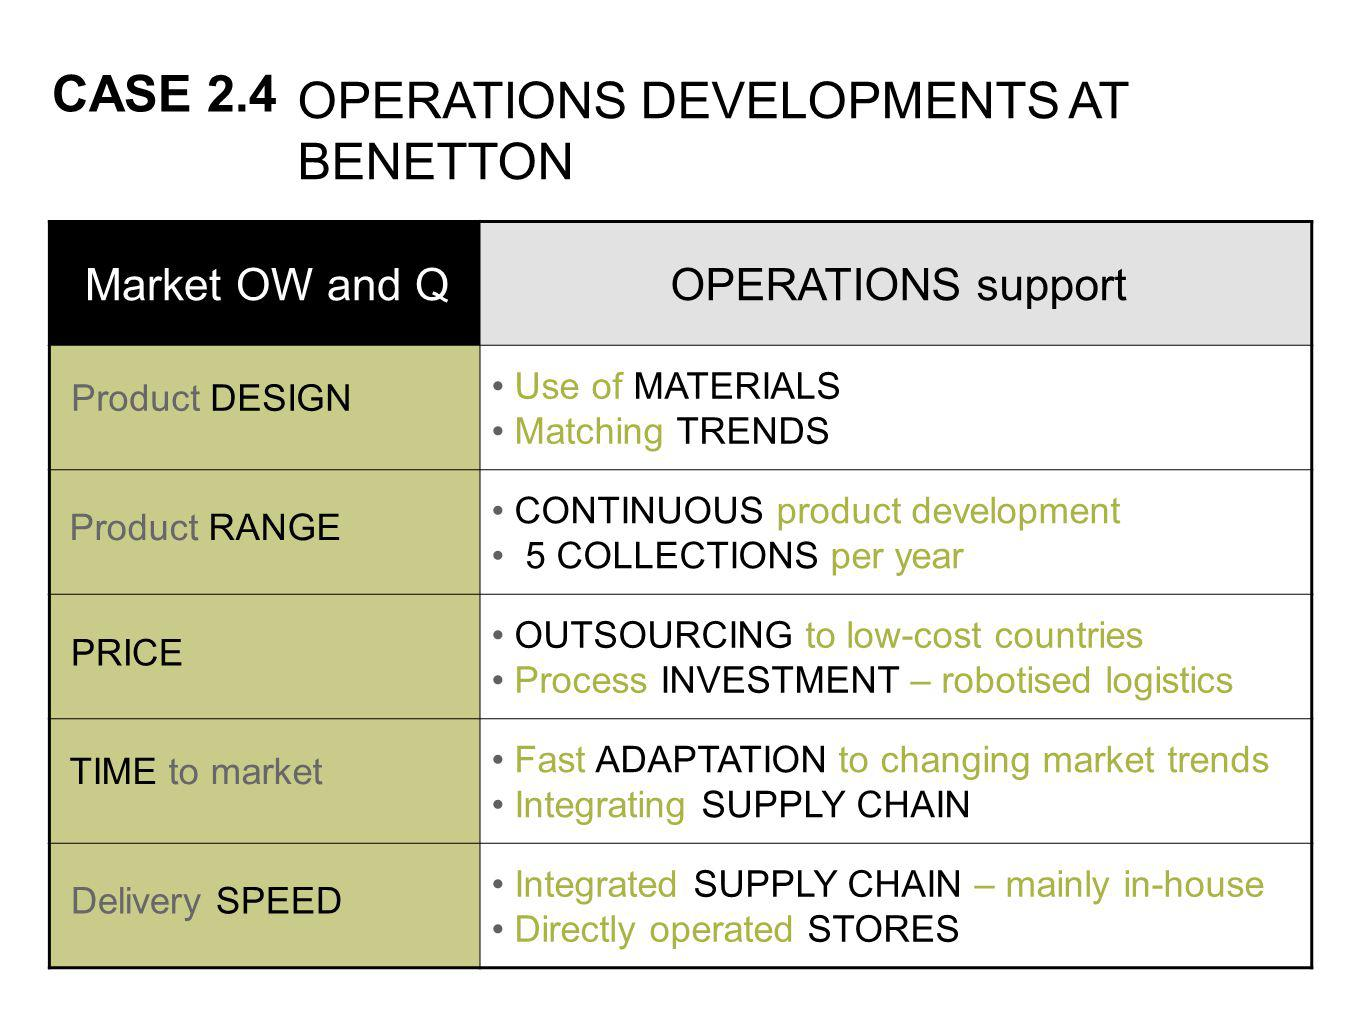 CASE 2.4 Market OW and QOPERATIONS support Use of MATERIALS Matching TRENDS CONTINUOUS product development 5 COLLECTIONS per year OUTSOURCING to low-cost countries Process INVESTMENT – robotised logistics Fast ADAPTATION to changing market trends Integrating SUPPLY CHAIN Integrated SUPPLY CHAIN – mainly in-house Directly operated STORES Product DESIGN OPERATIONS DEVELOPMENTS AT BENETTON Product RANGE PRICE TIME to market Delivery SPEED